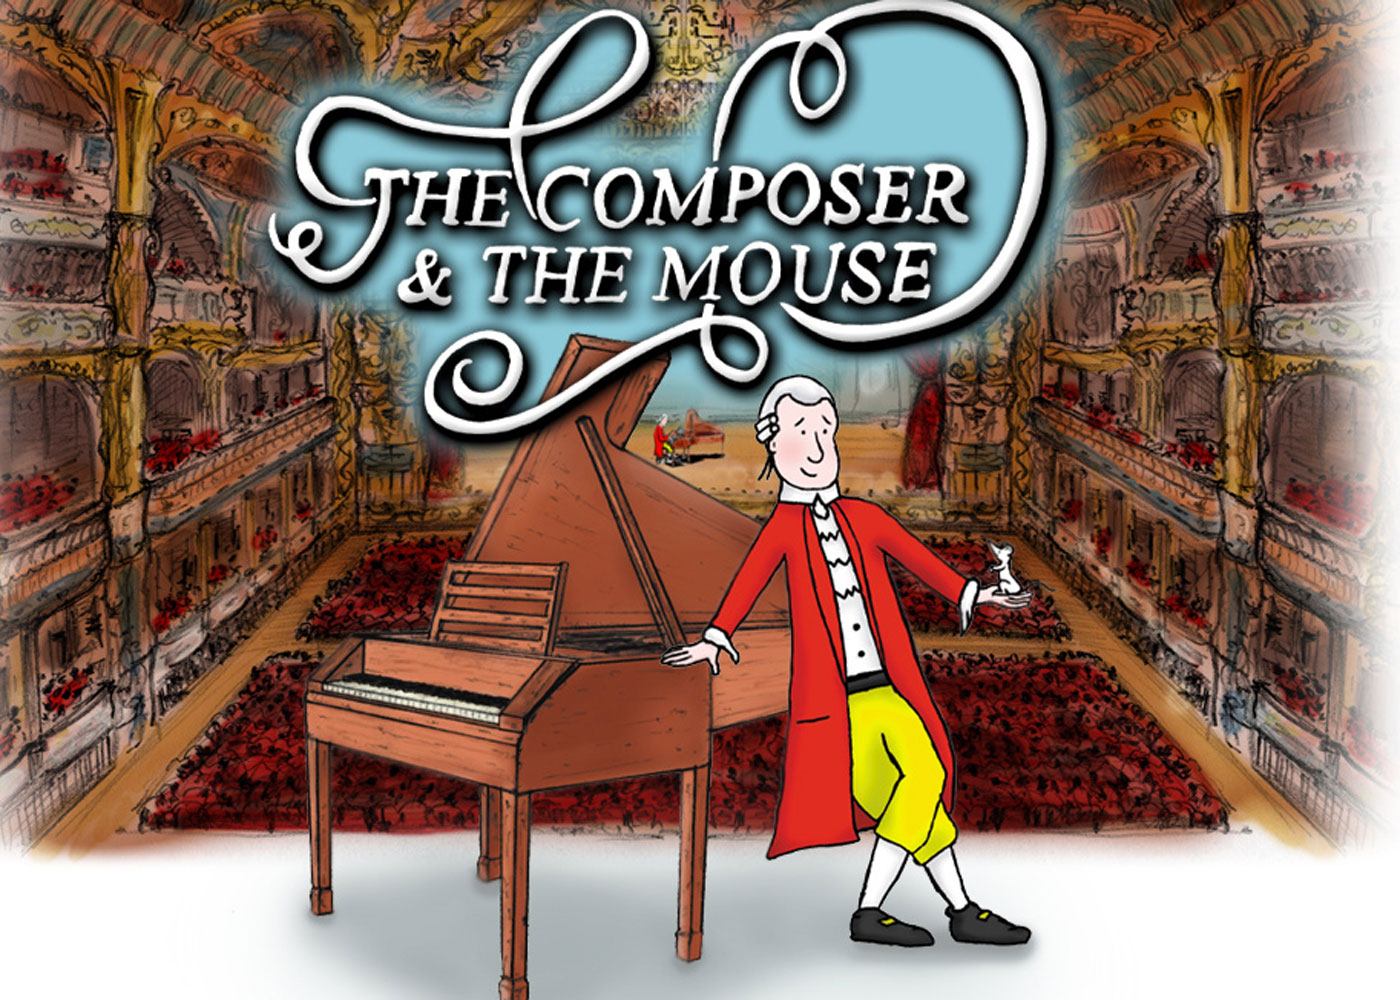 VCHpresents Organ: The Composer and the Mouse